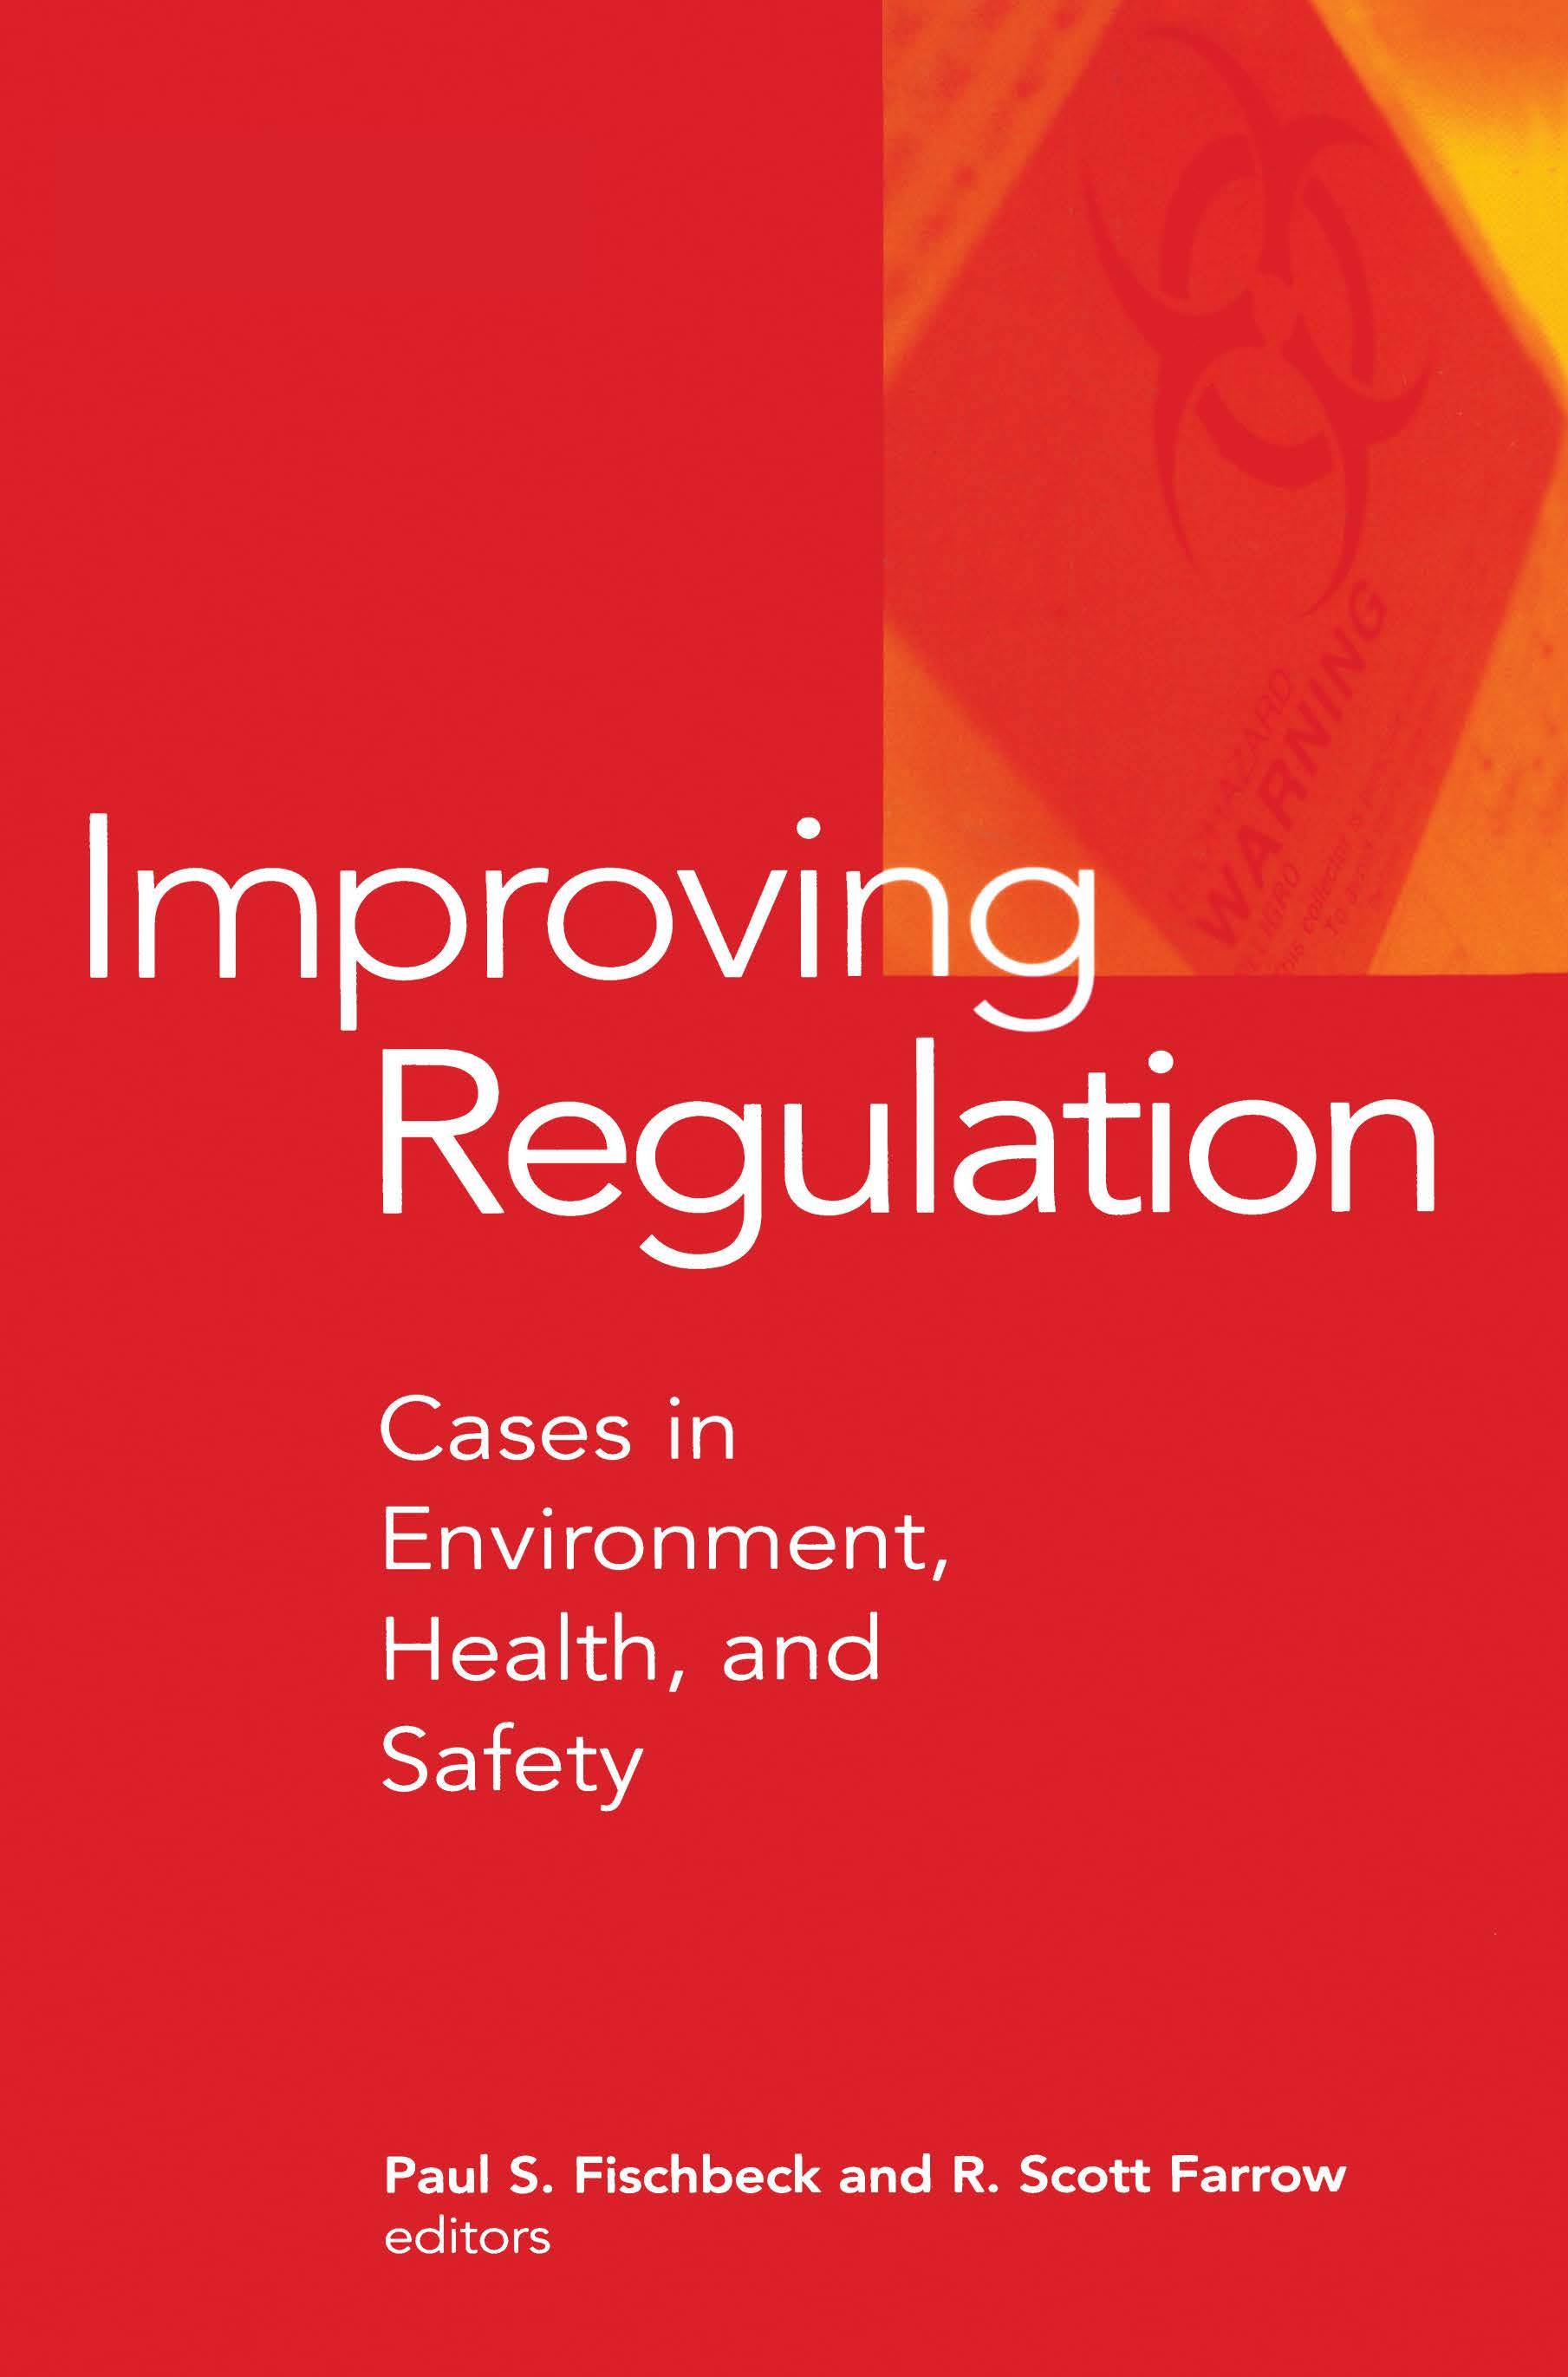 Improving Regulation